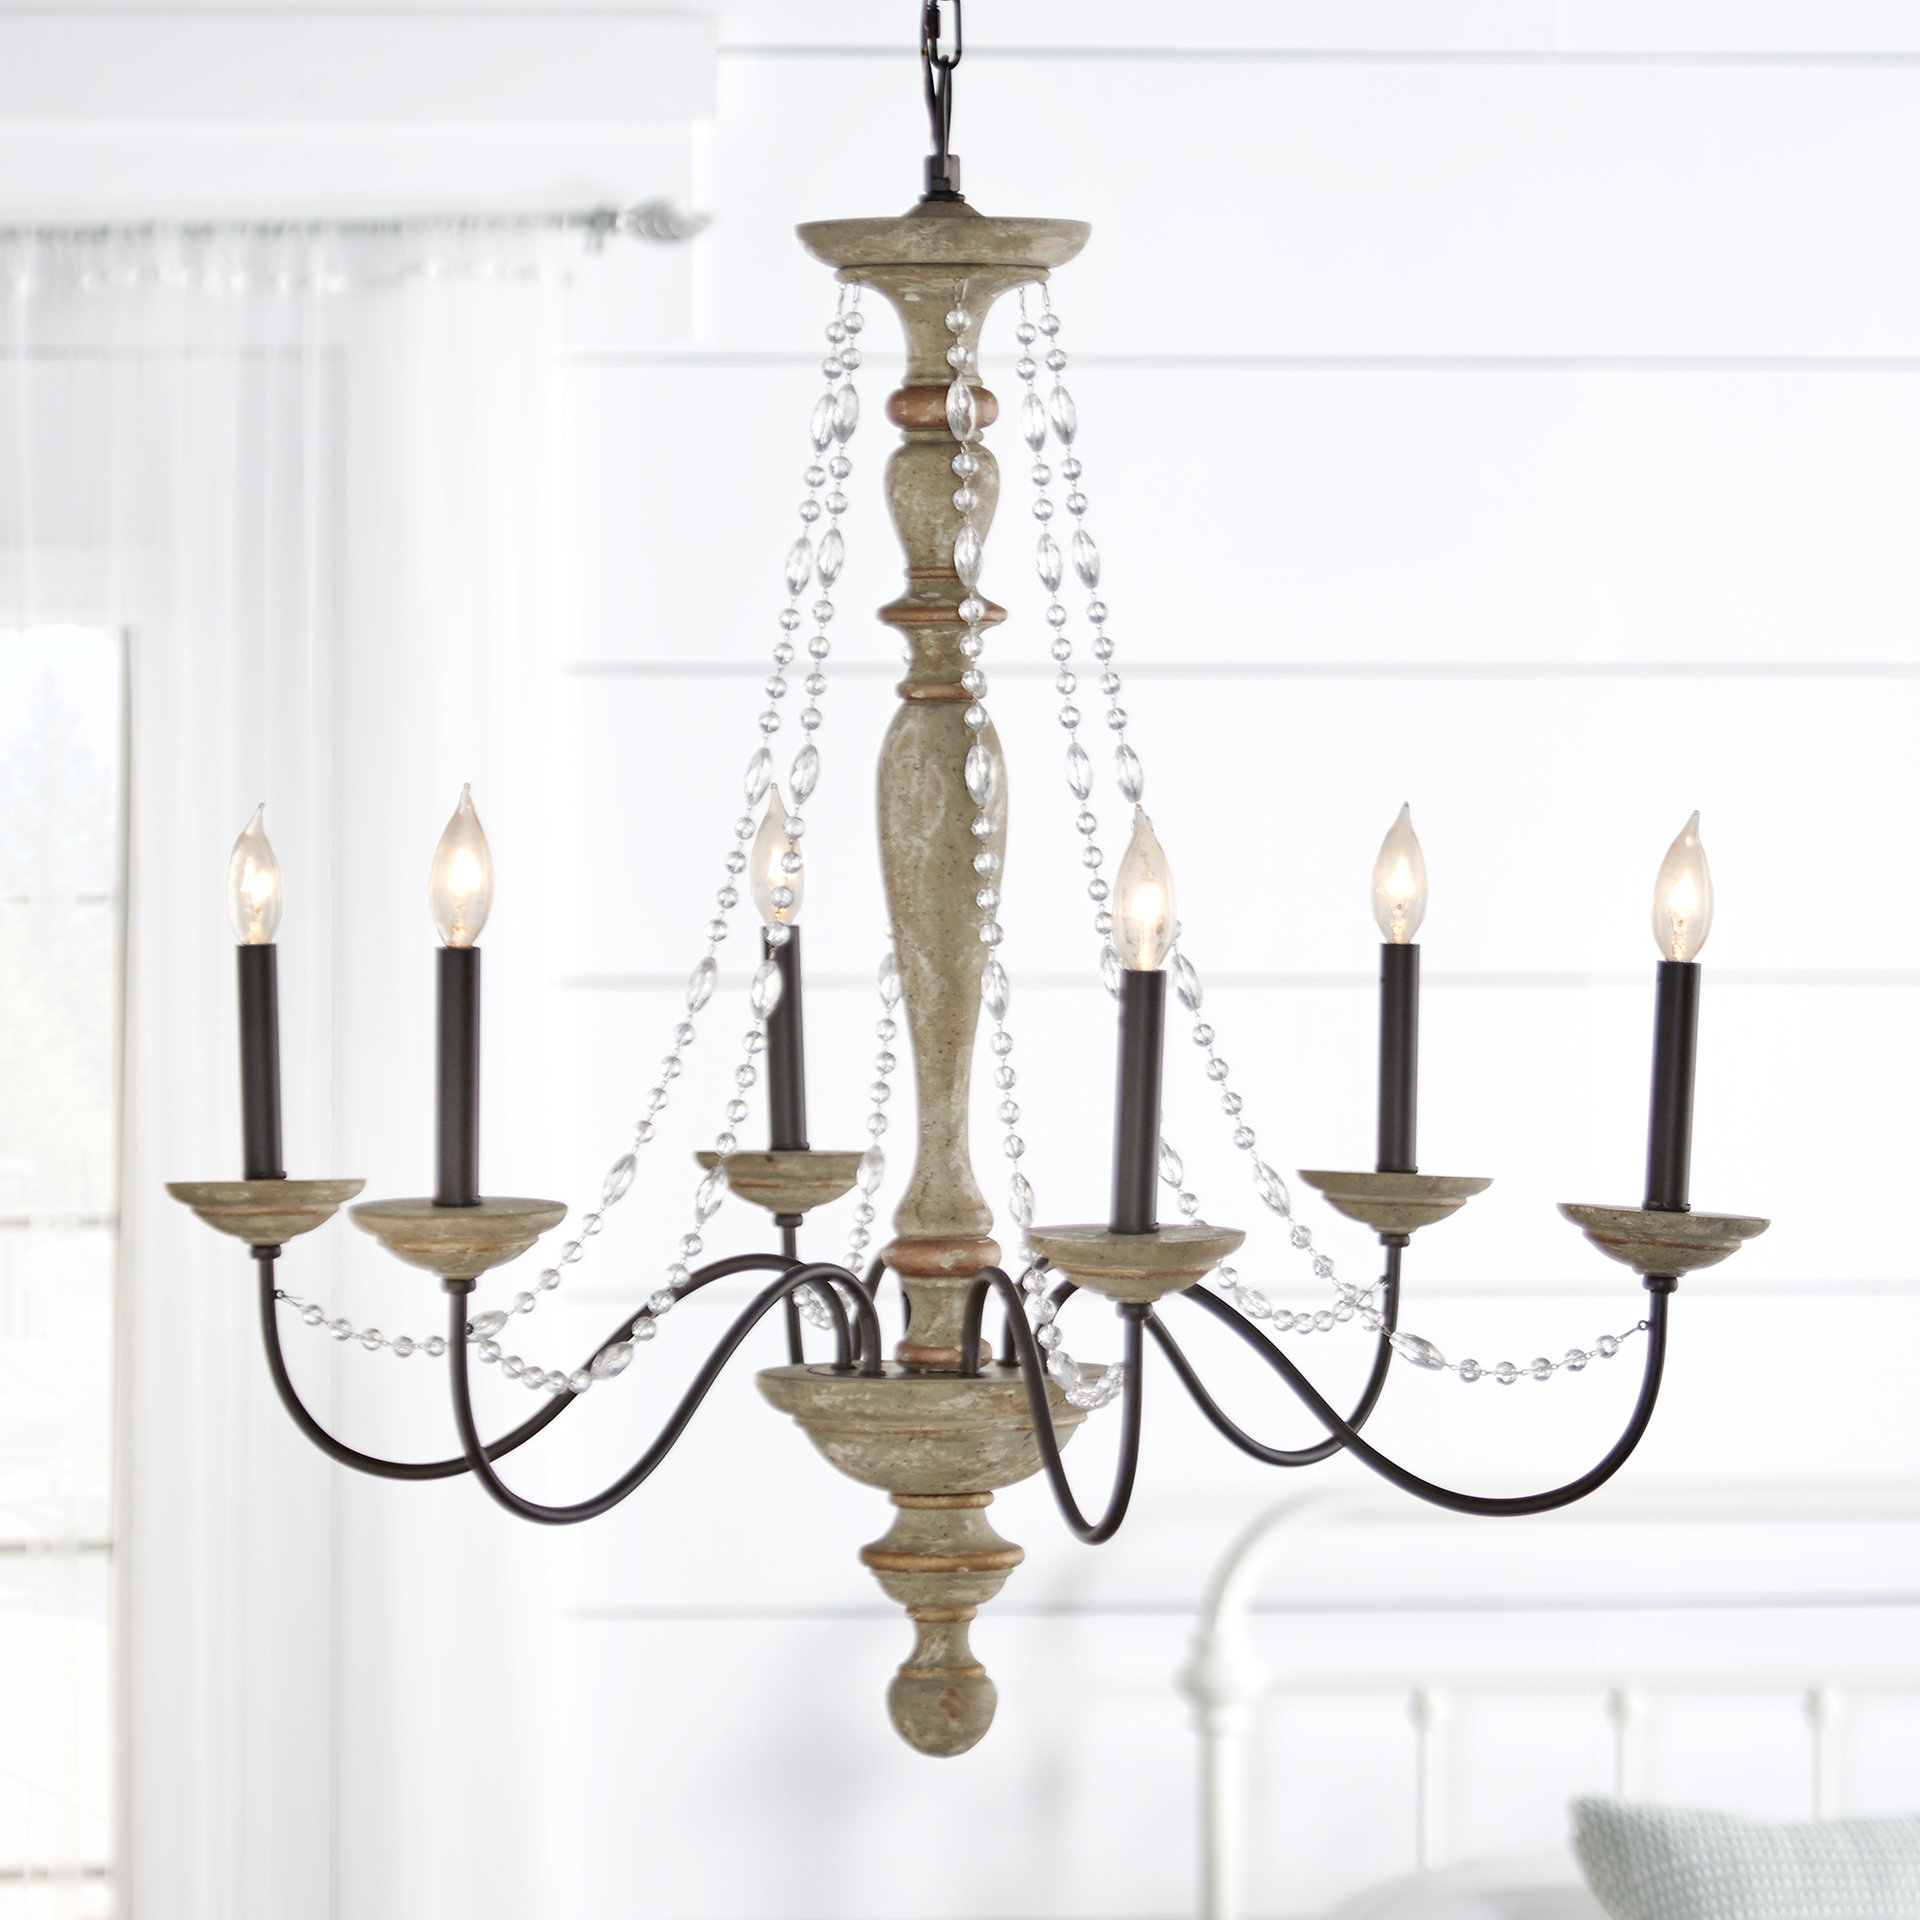 Three Posts Brennon 6 Light Candle Style Chandelier Pertaining To Most Up To Date Armande Candle Style Chandeliers (View 22 of 25)